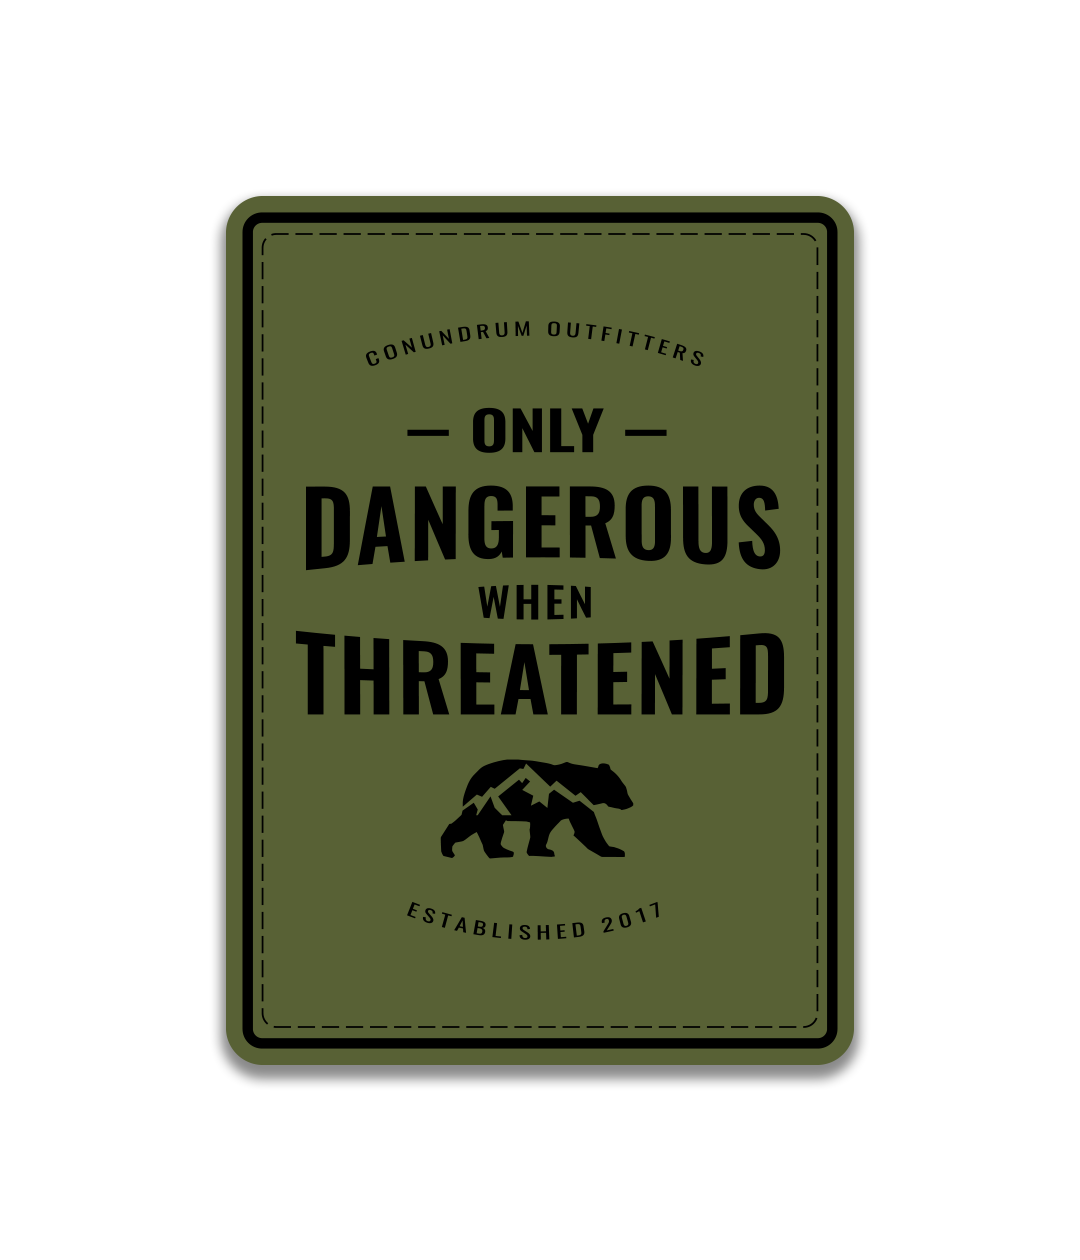 Dangerous Sticker